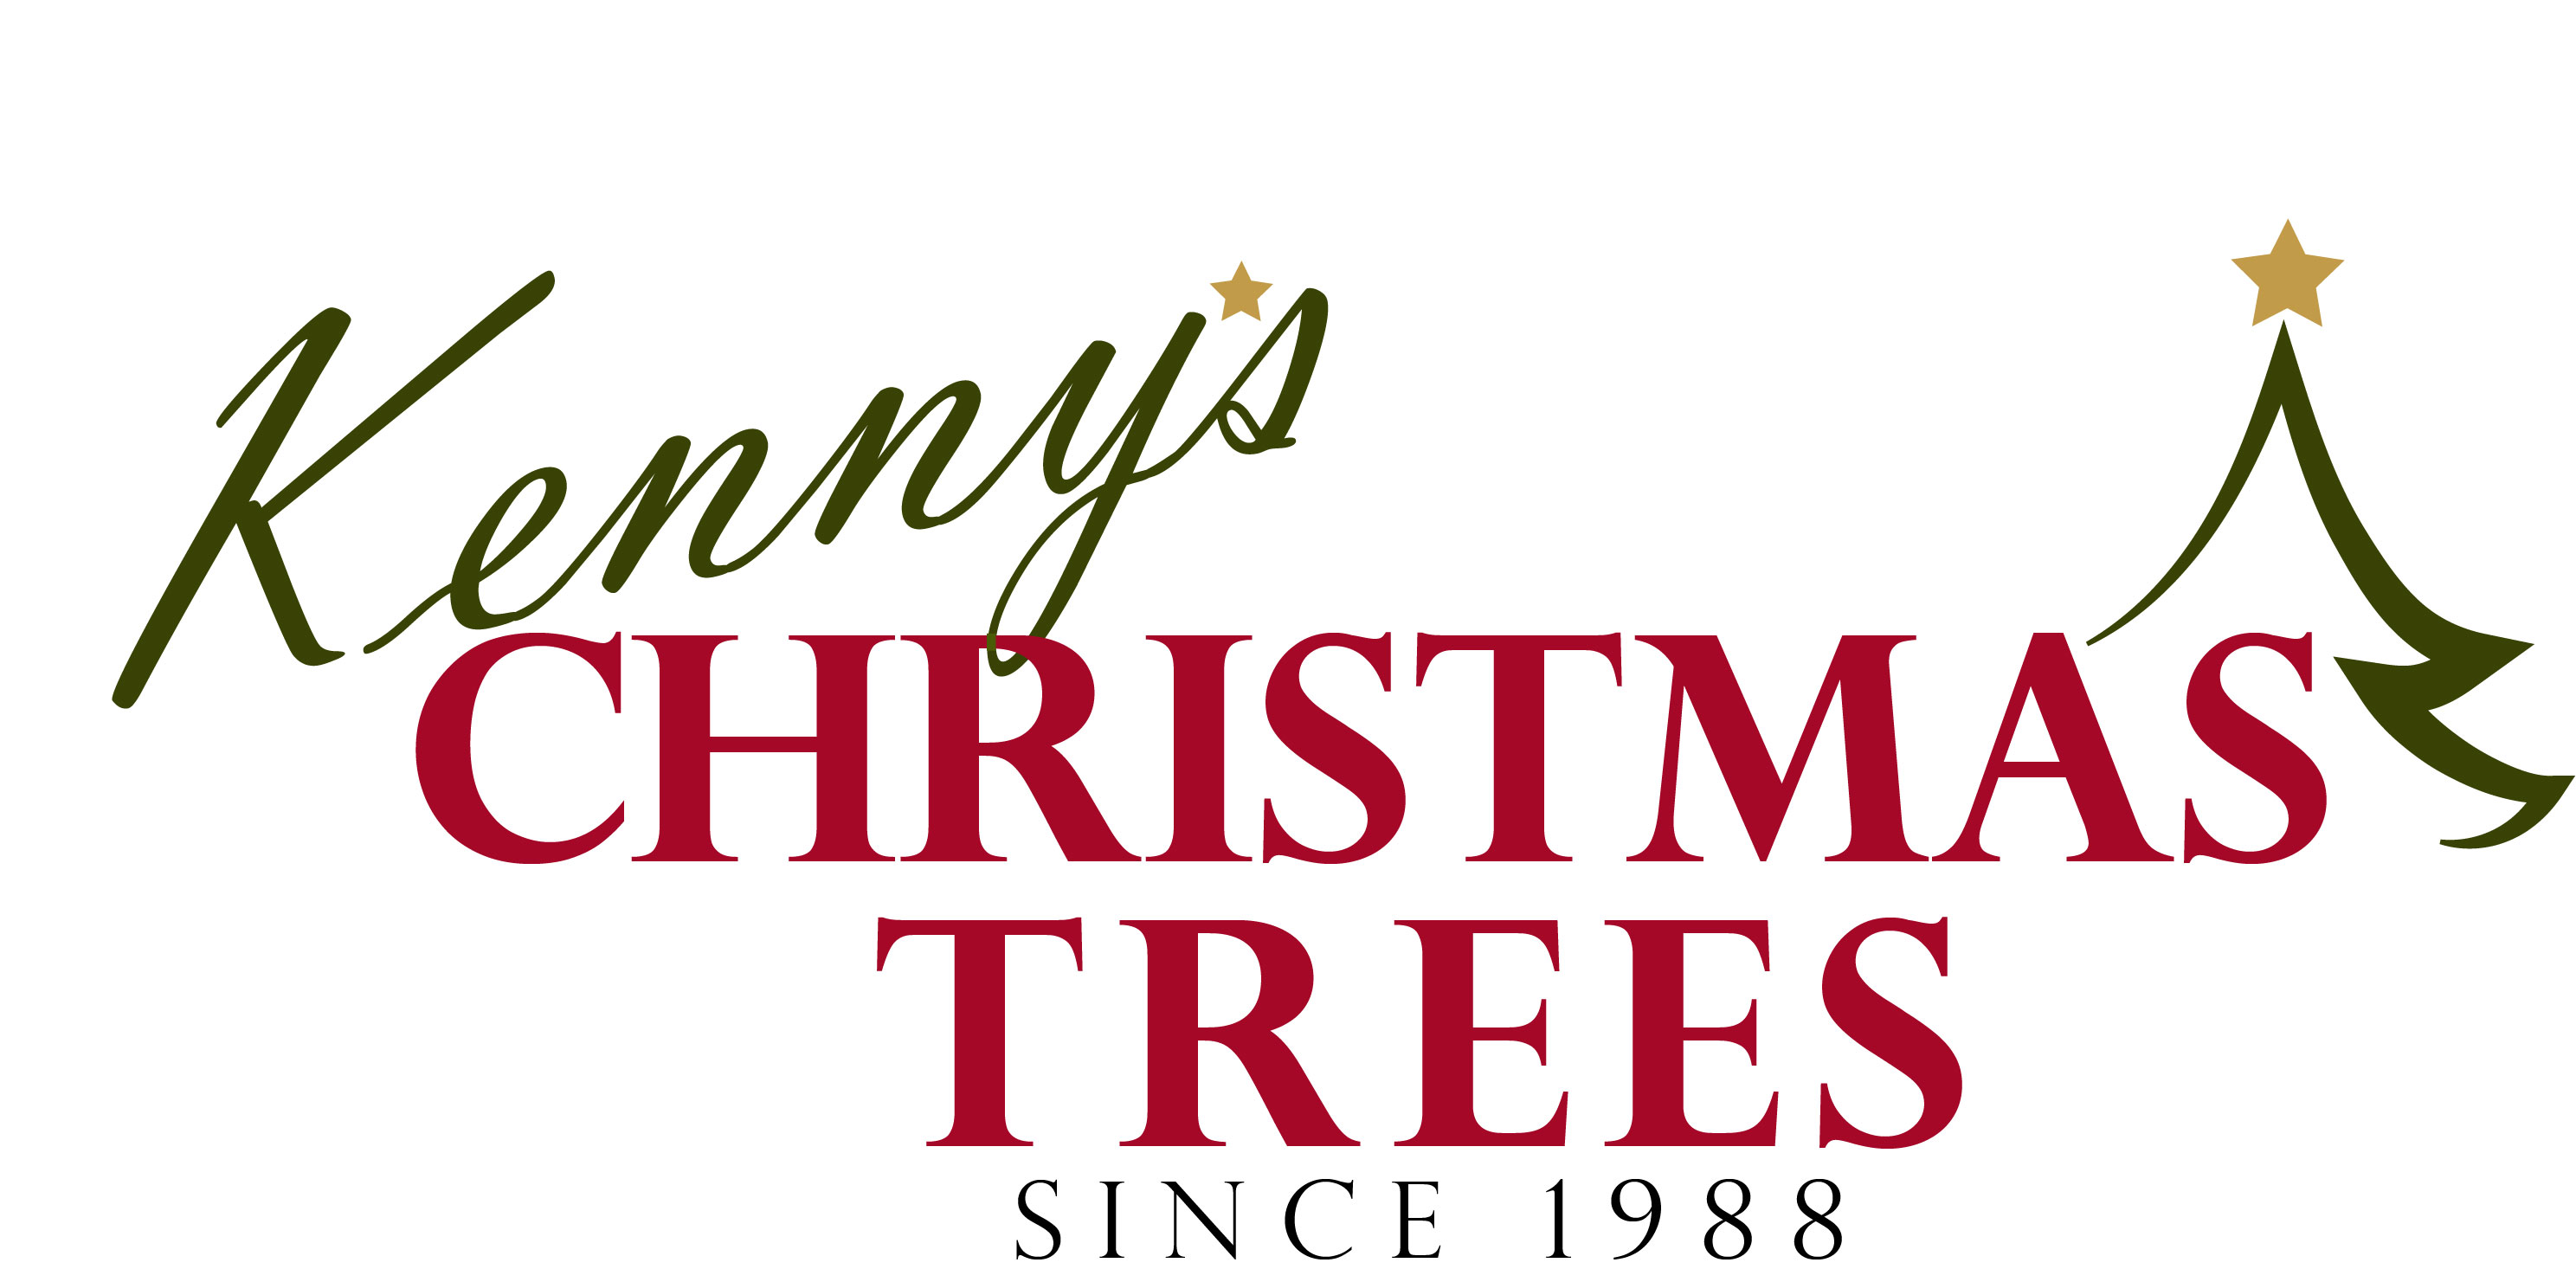 Kenny's Christmas Trees